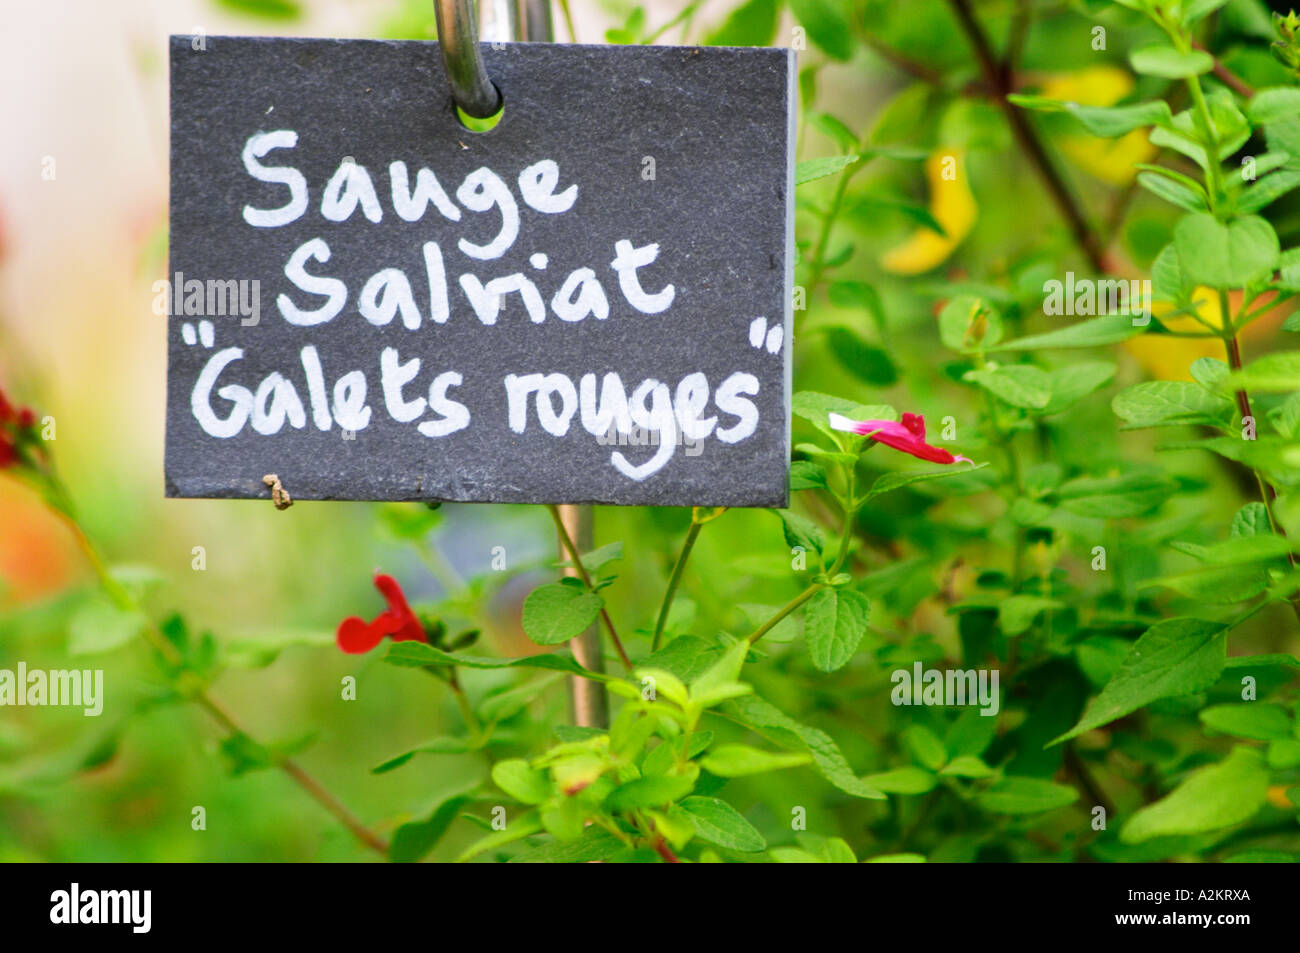 Feuille De Pierre Slate Skin sauge stock photos & sauge stock images - alamy